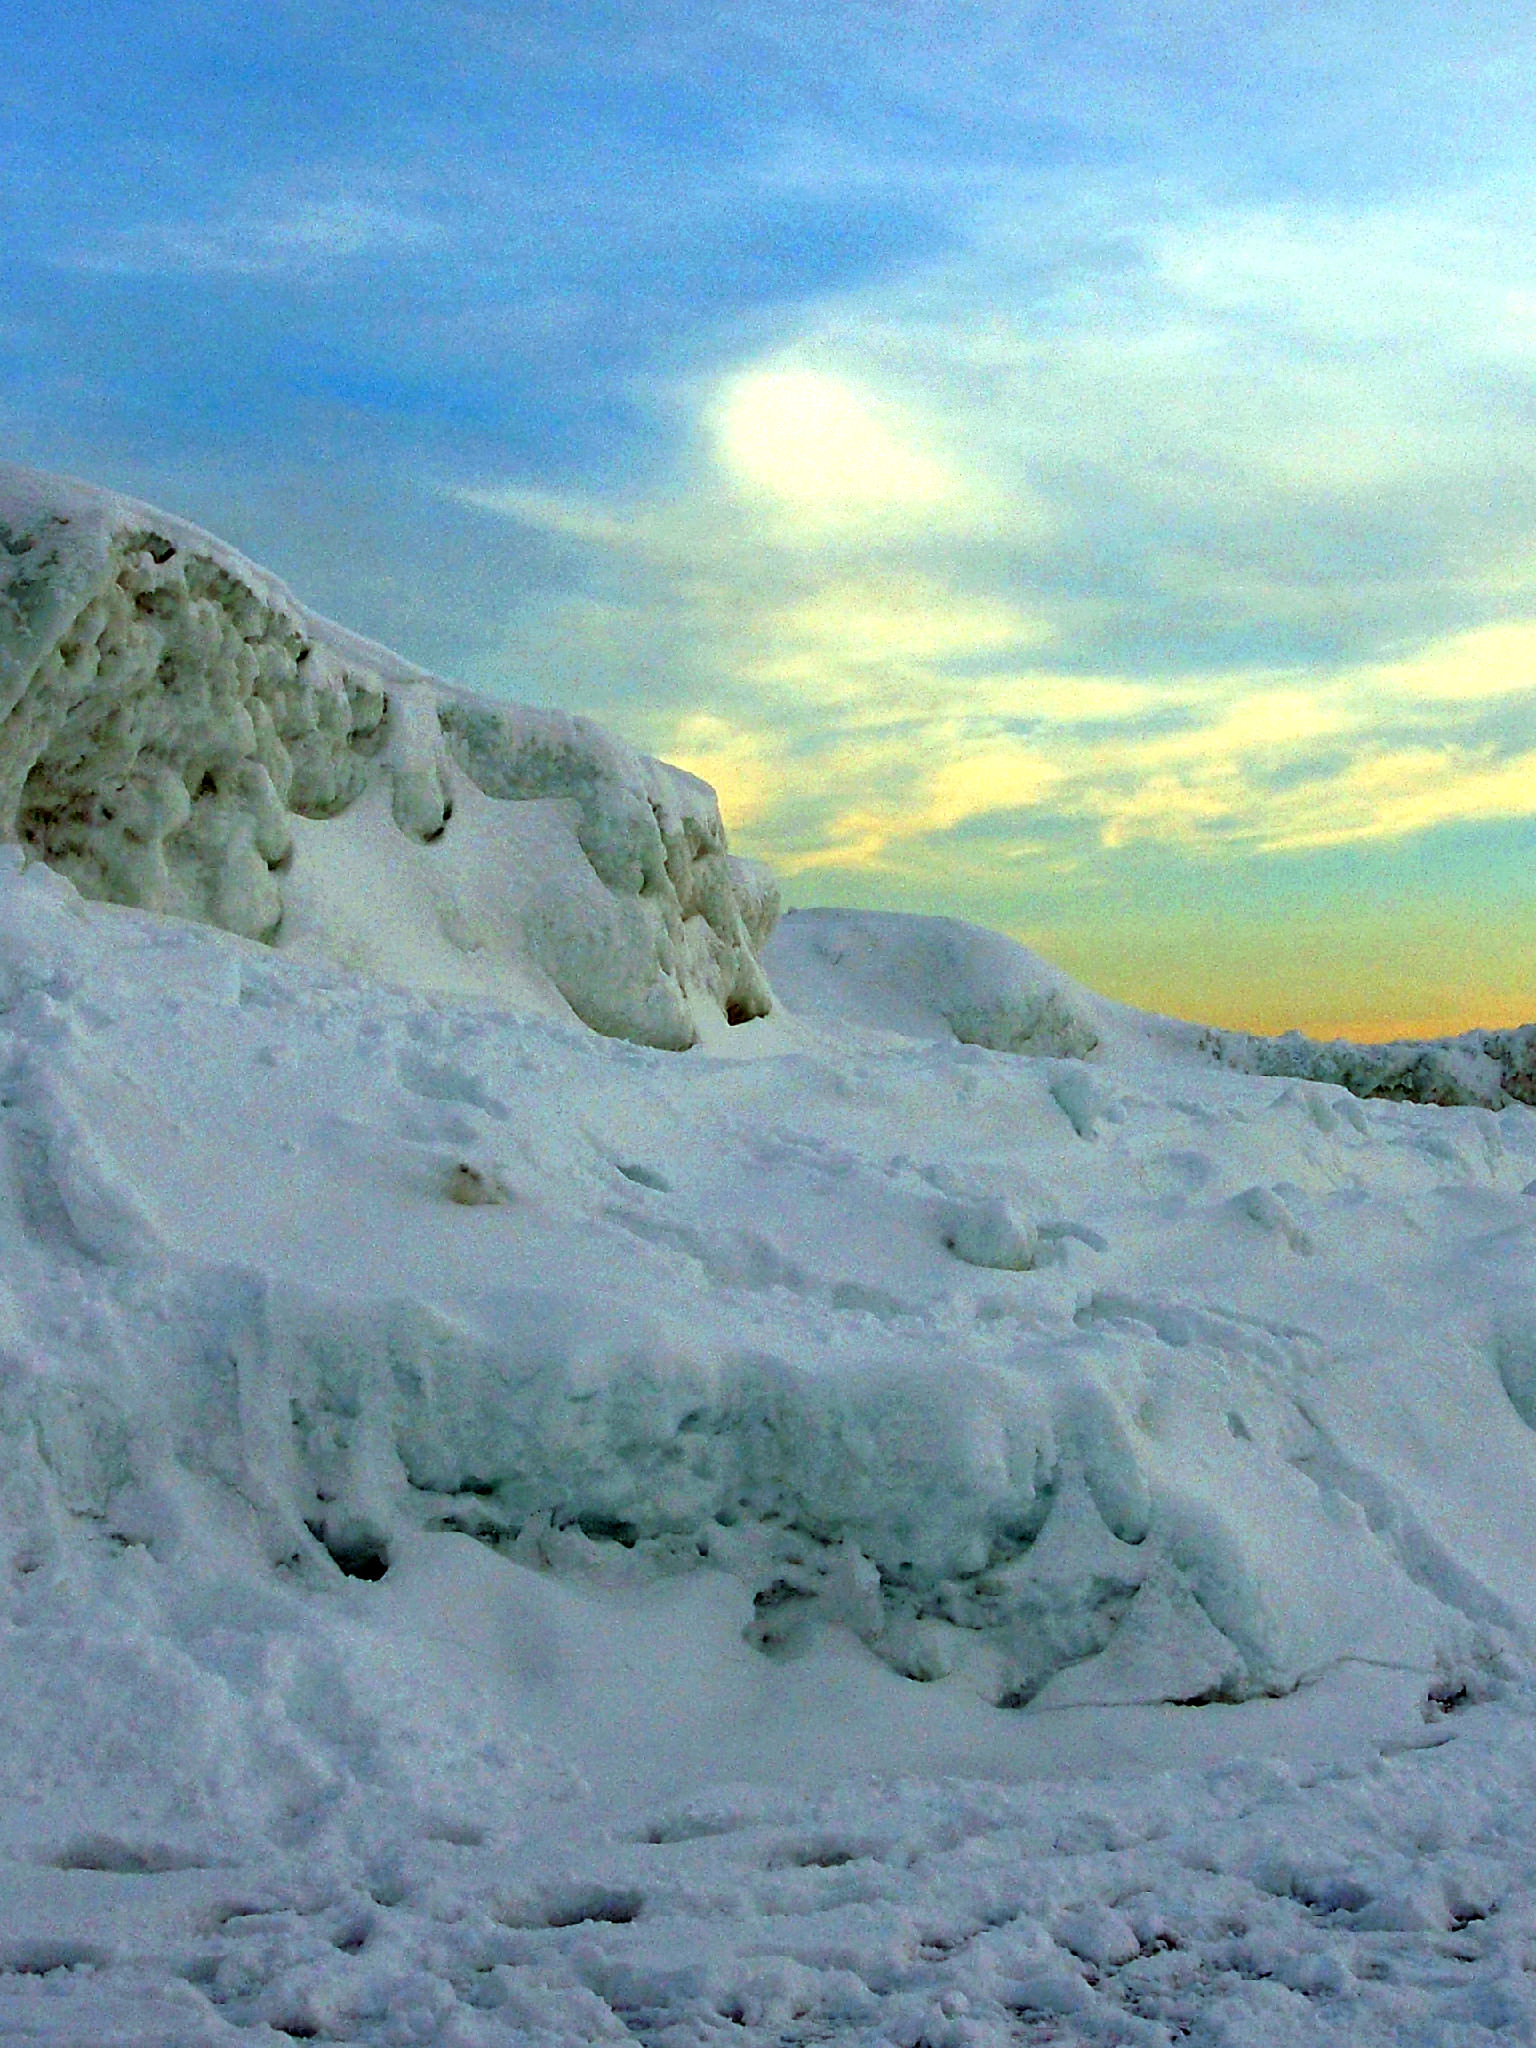 Lake Michigan Ice Caves at Sunset | ComfortablyDomestic.com